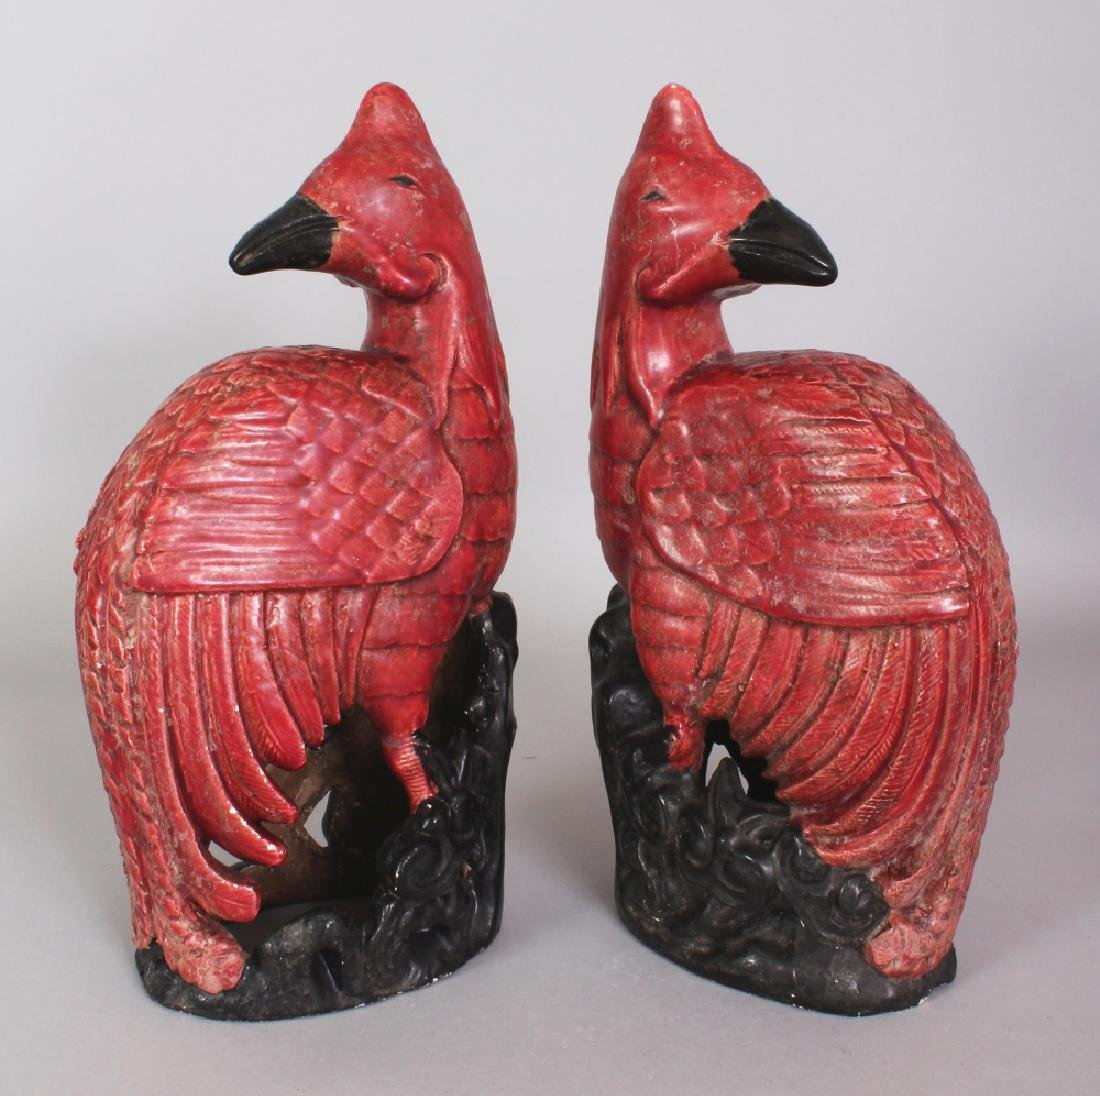 A PAIR OF 20TH CENTURY CHINESE RED GLAZED PORCELAIN